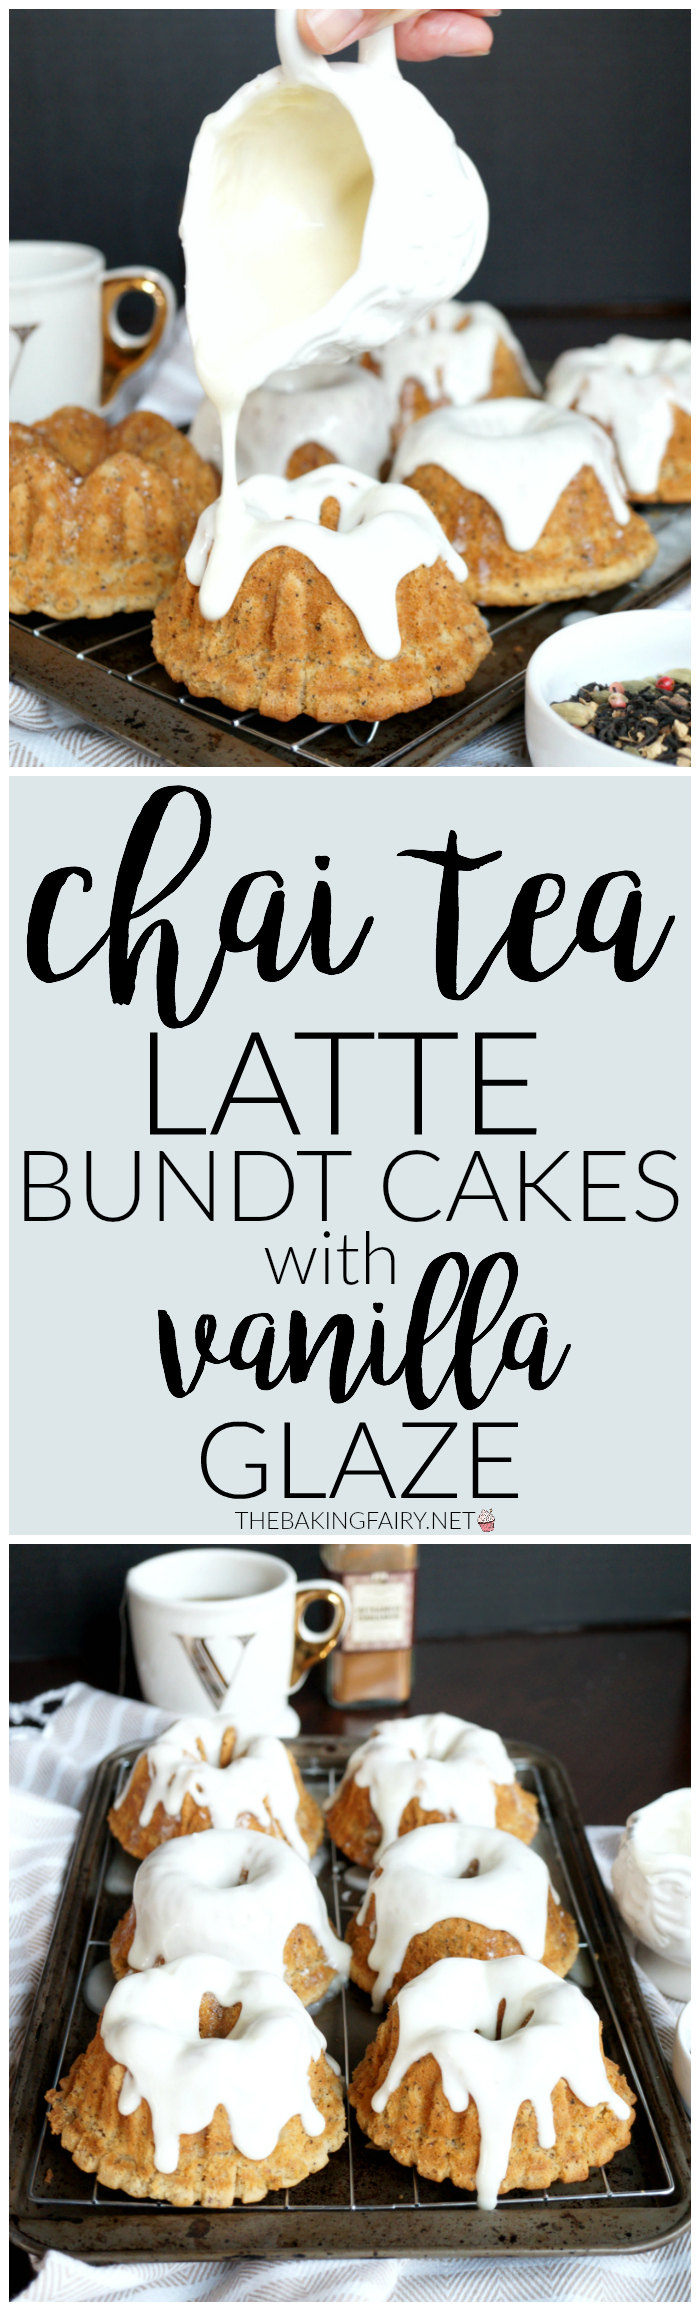 chai tea latte bundt cakes with vanilla glaze | The Baking Fairy